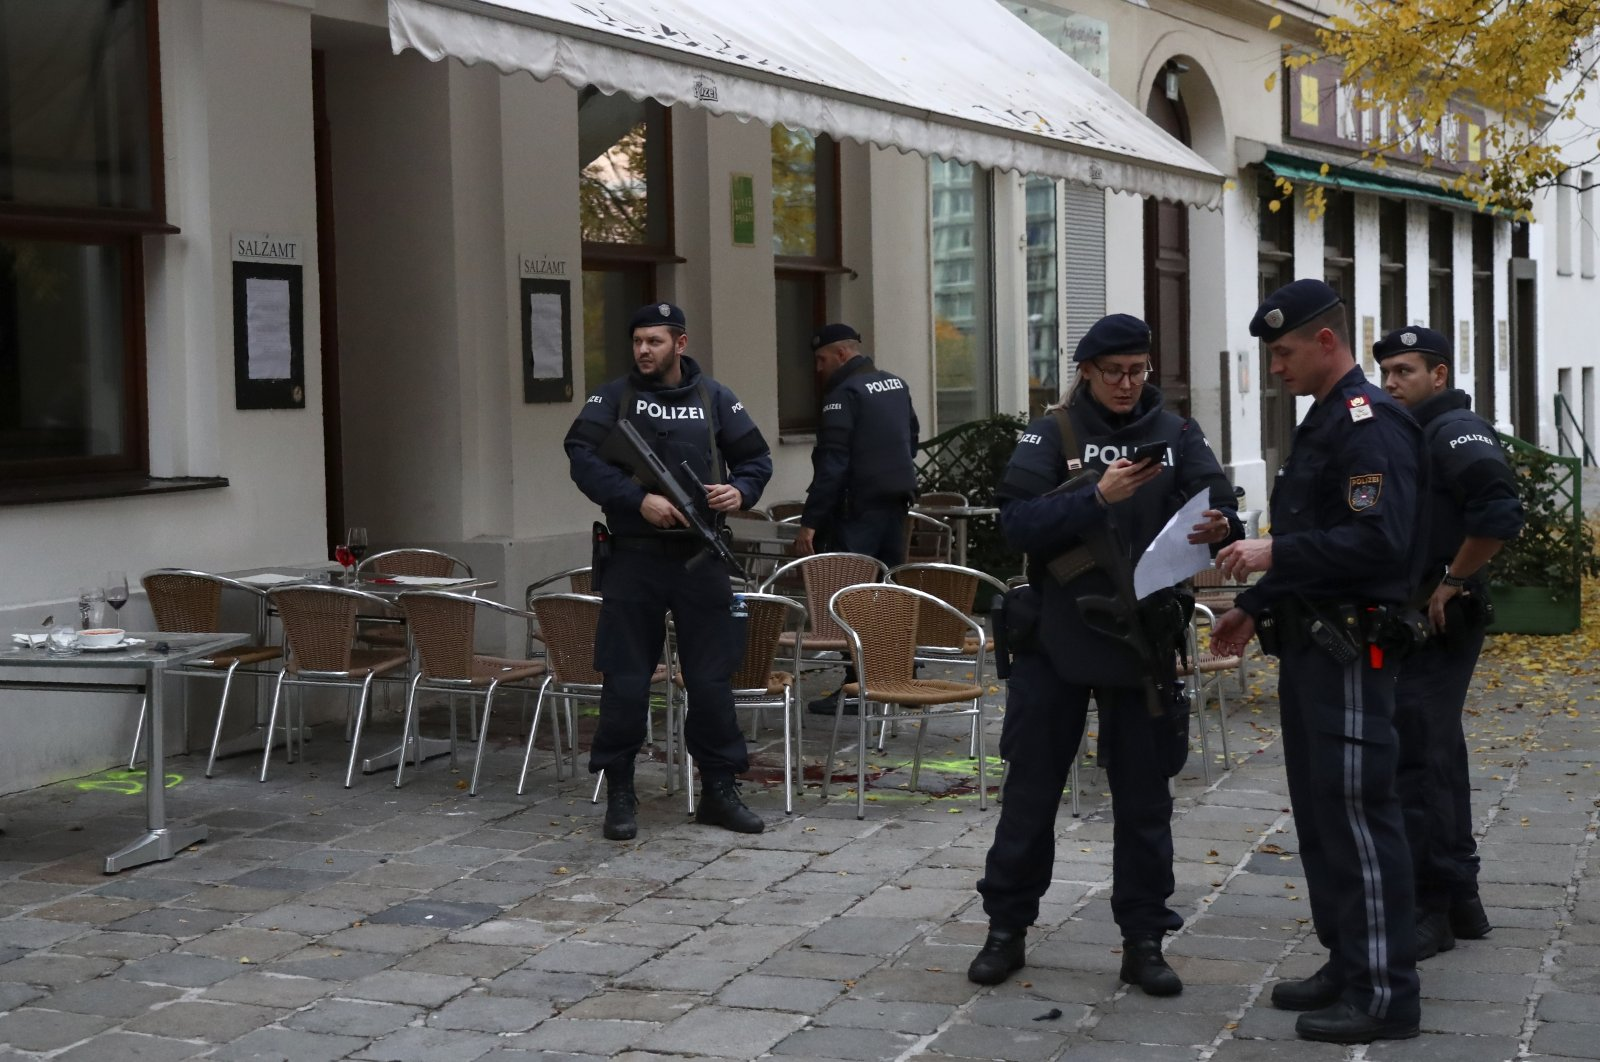 Police officers guard the crime scene at a bar in Vienna, Austria, Nov. 3, 2020. (AP Photo)